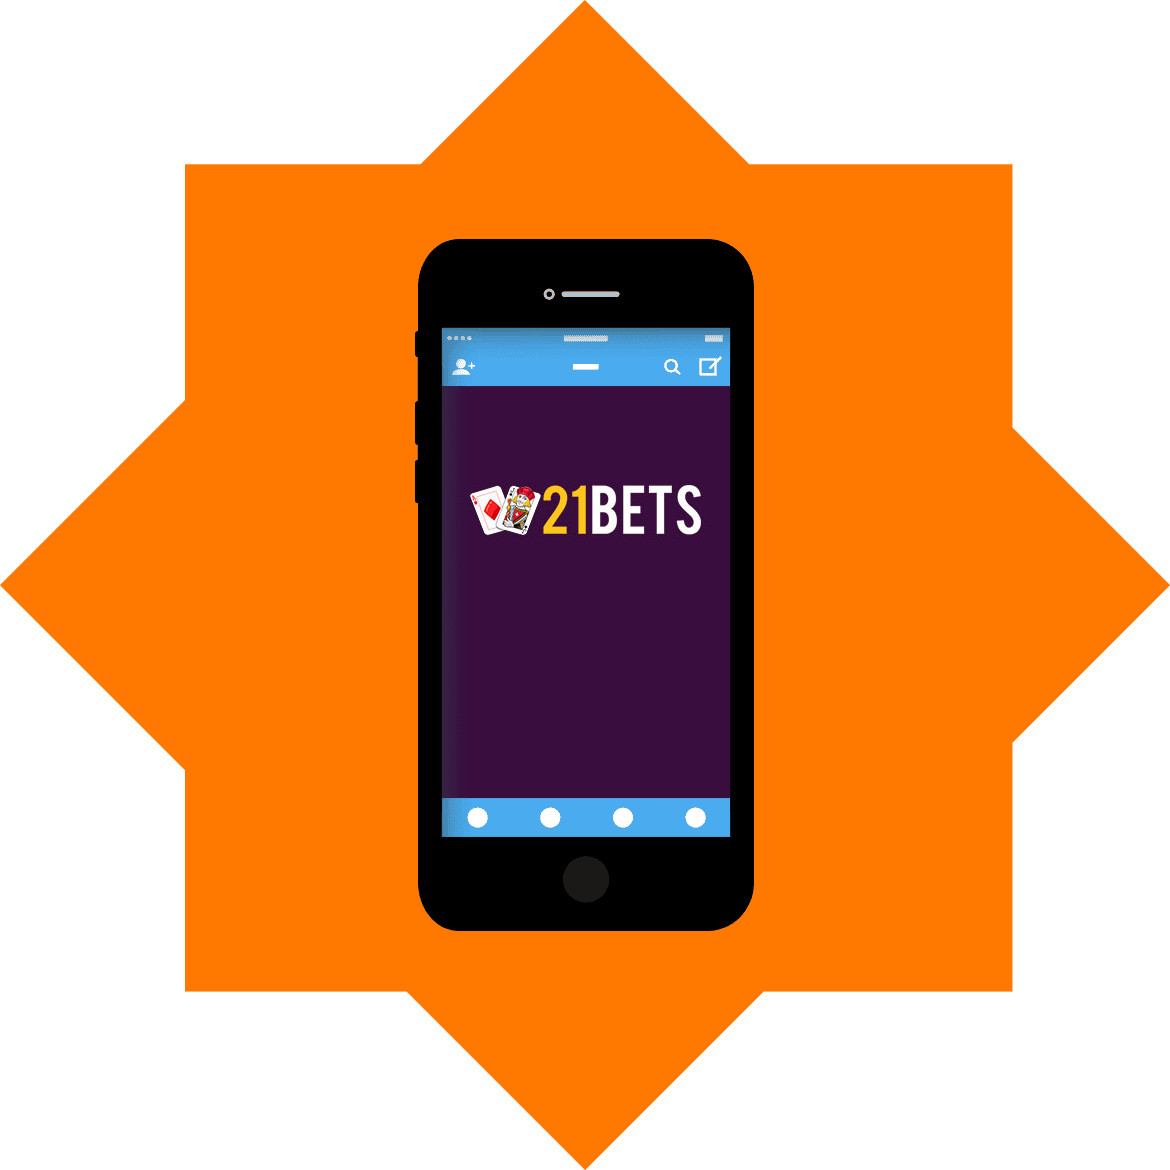 21bets Casino - Mobile friendly